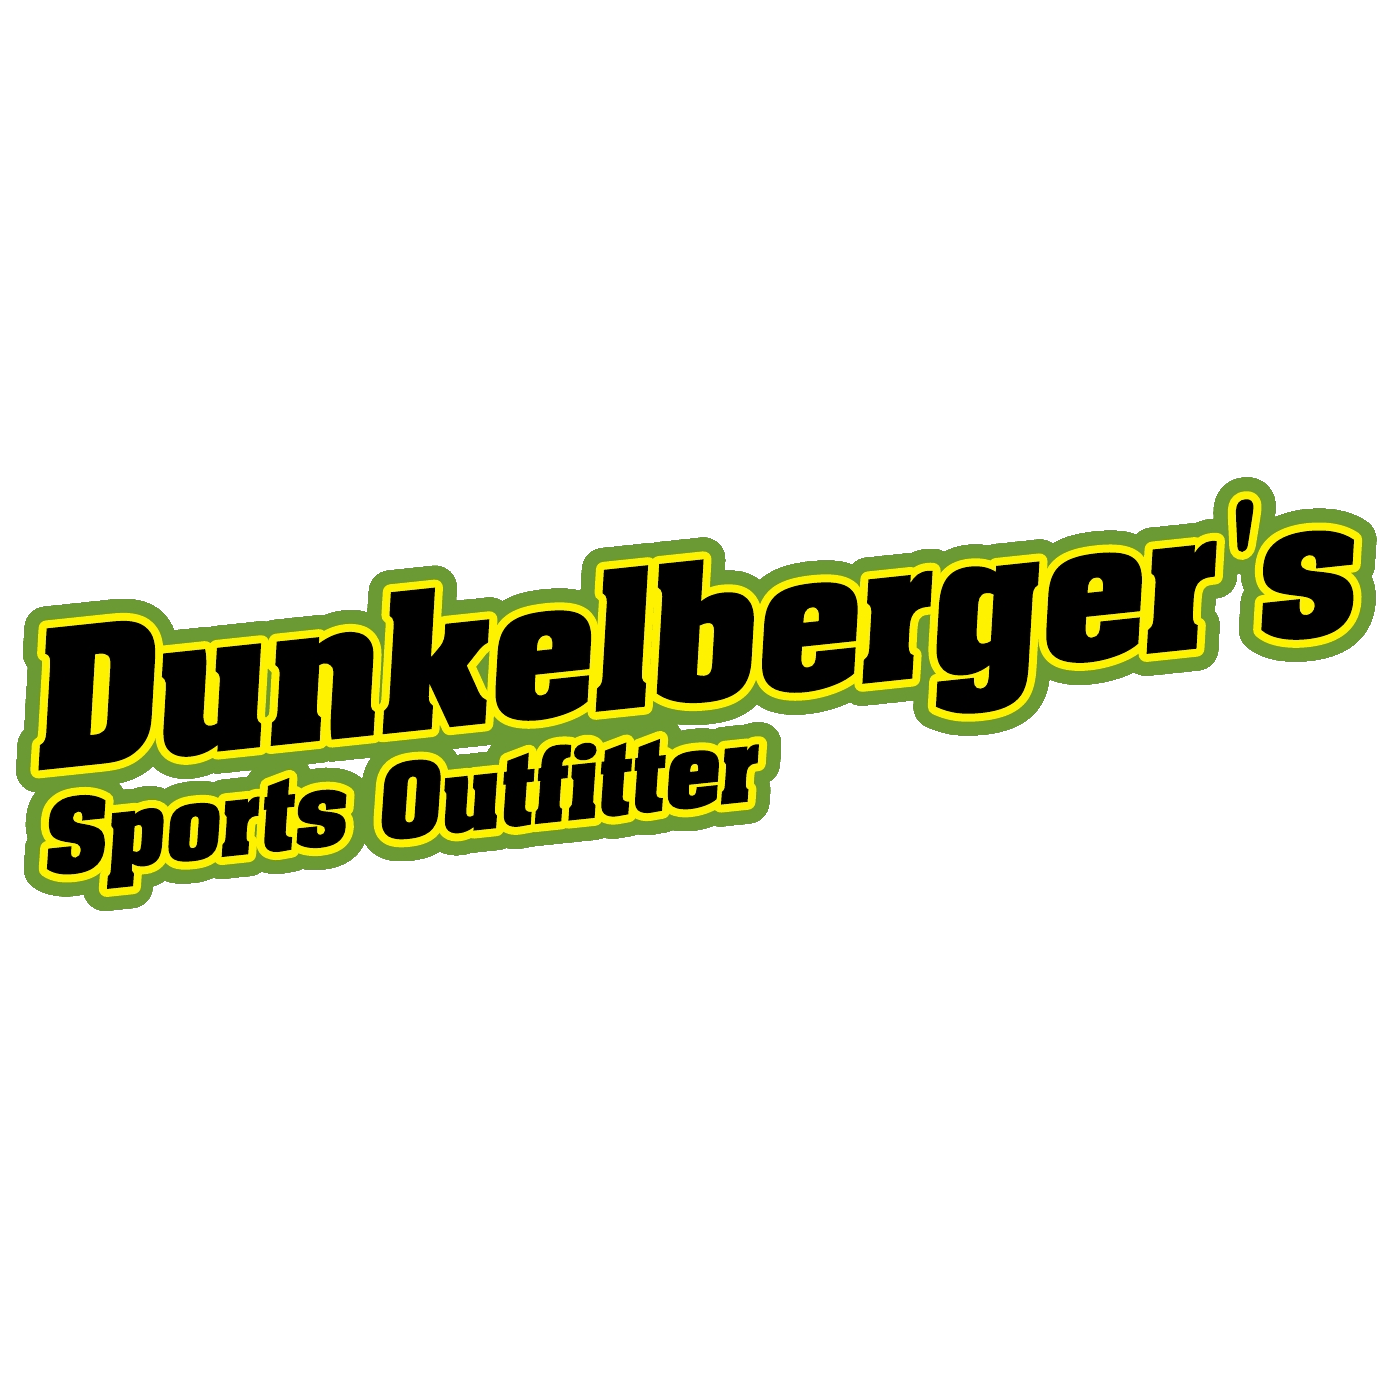 Dunkelberger's Sports Outfitters